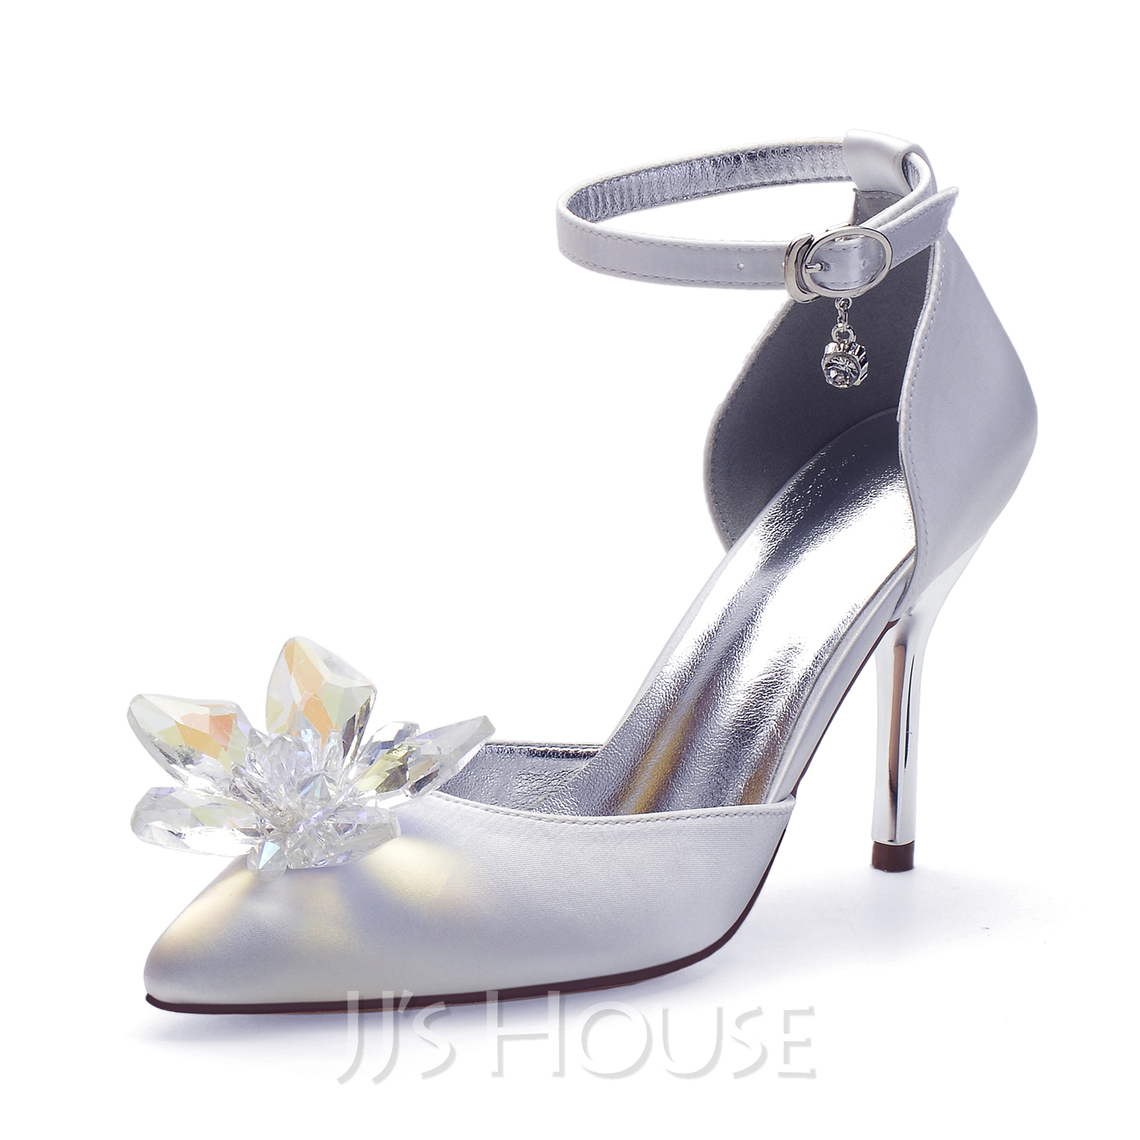 Women's Lace Stiletto Heel Pumps With Rhinestone Ruched